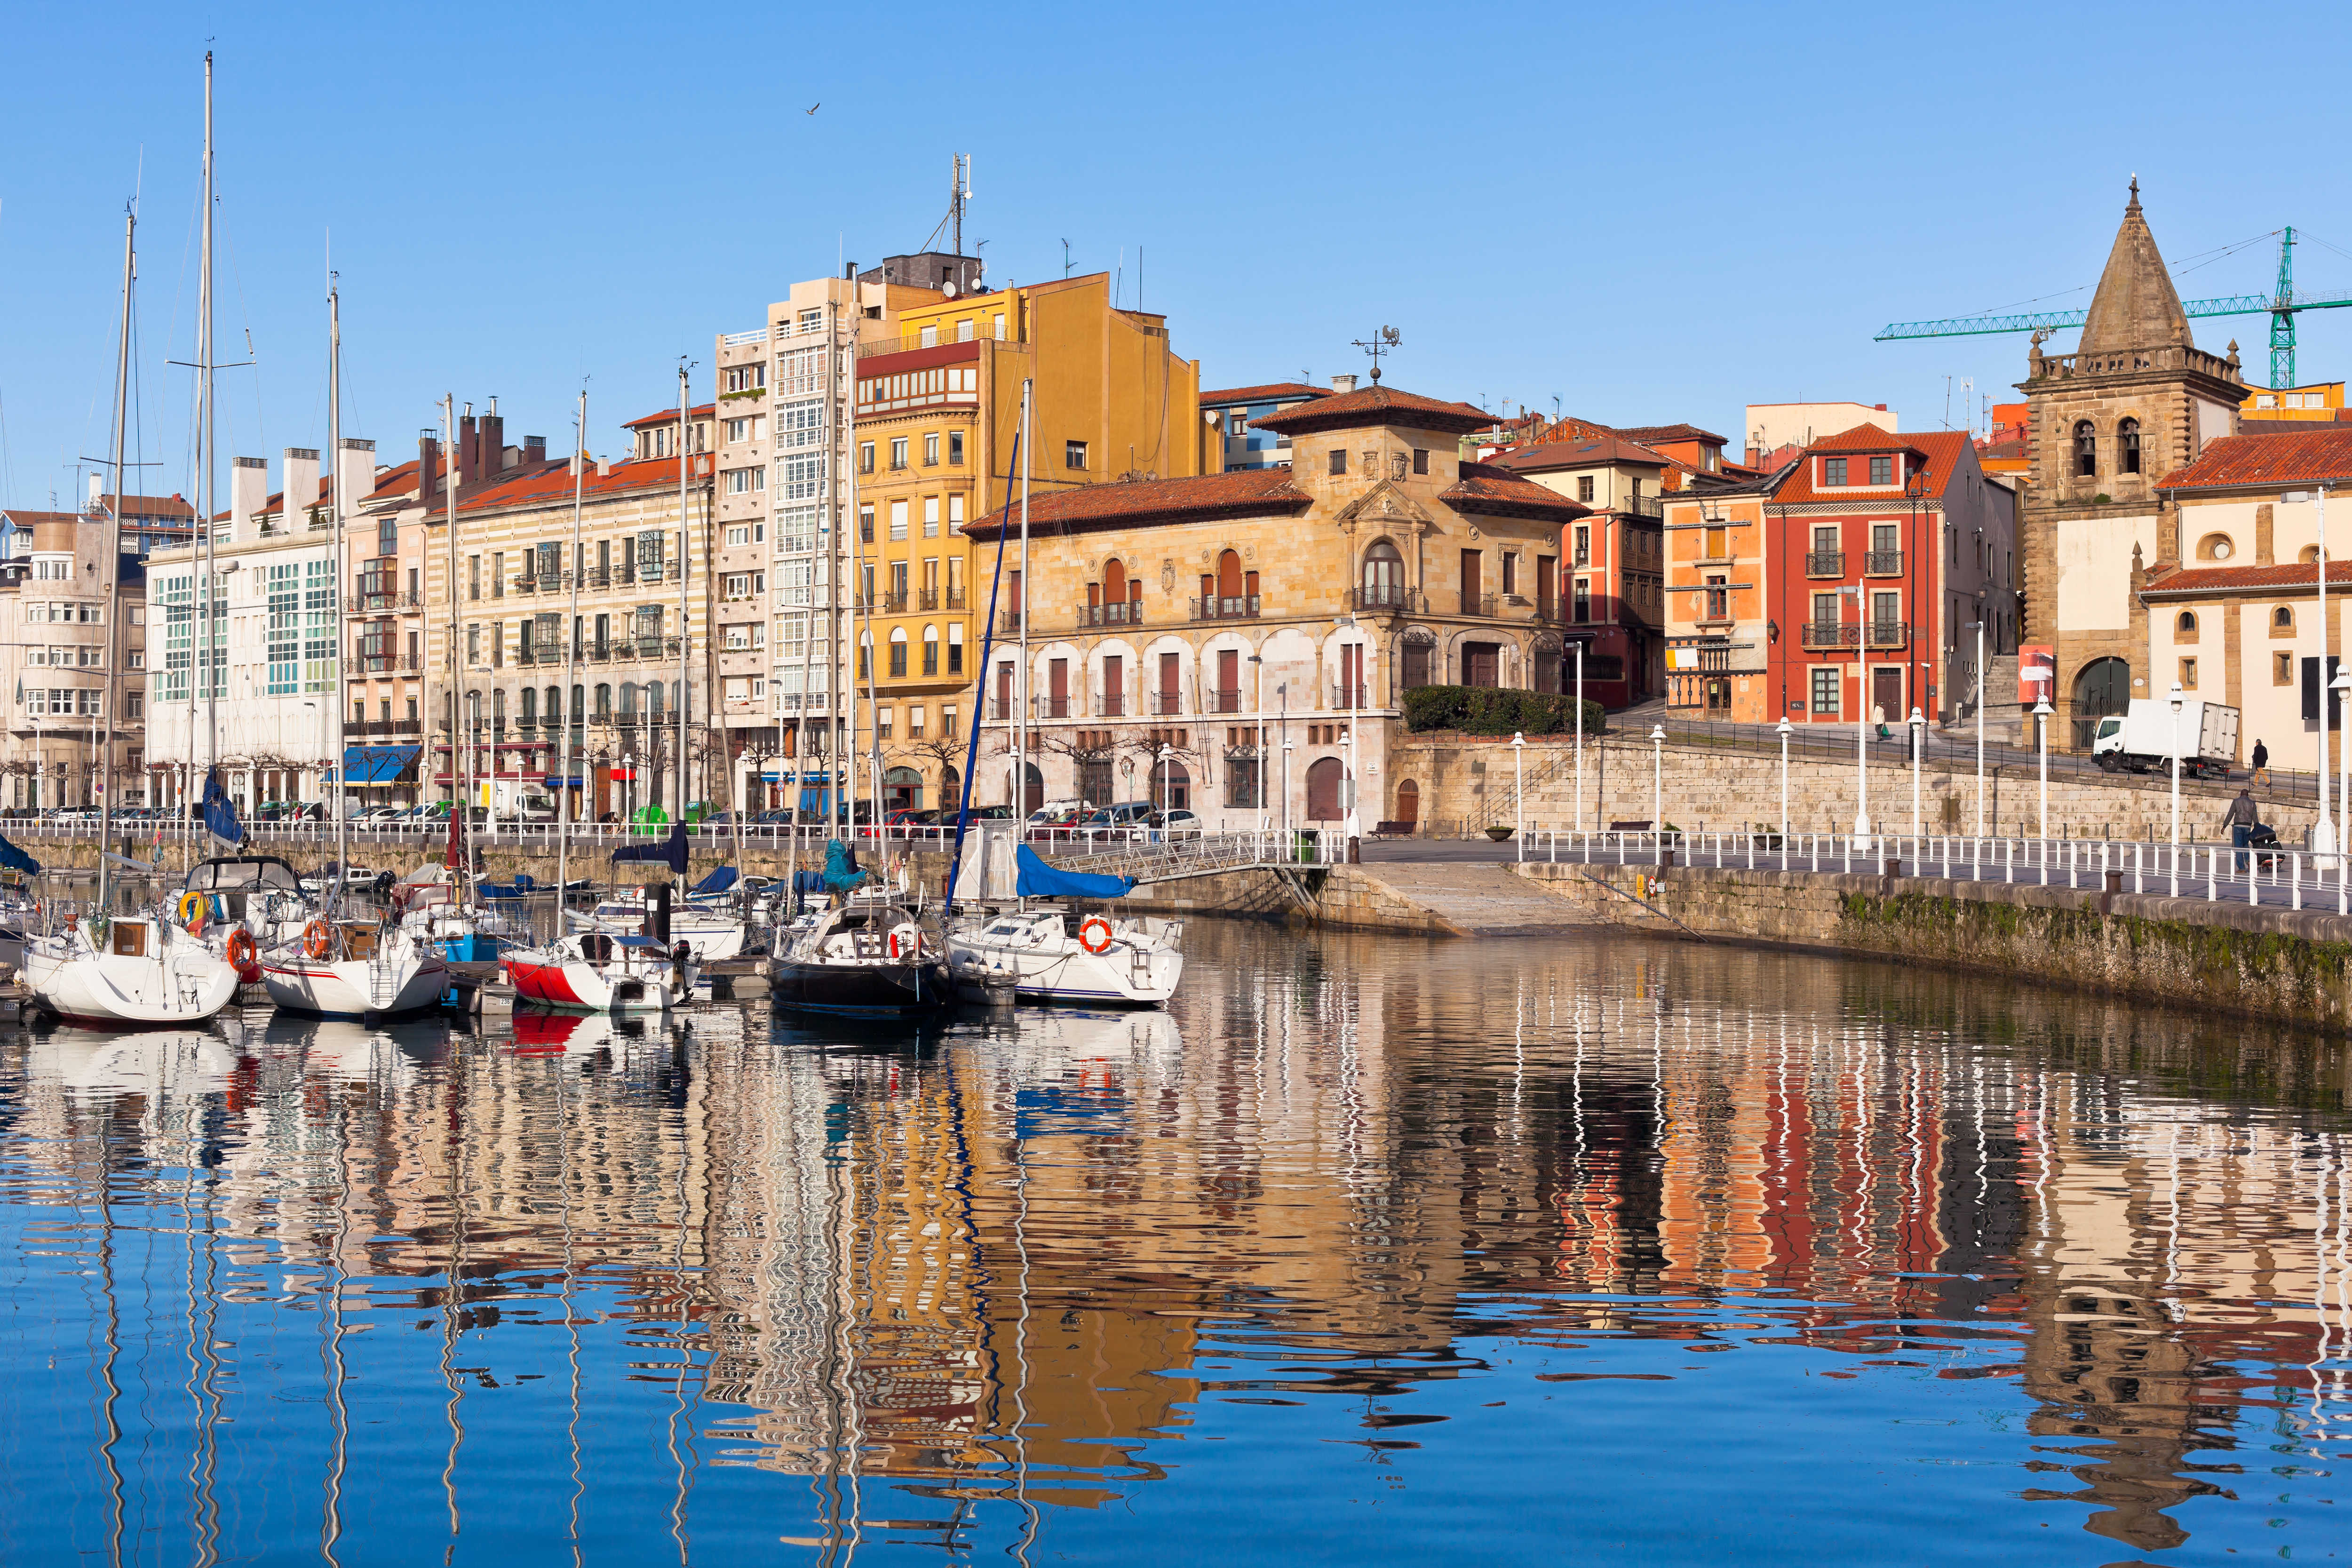 Old Port of Gijon, Asturias, Northern Spain